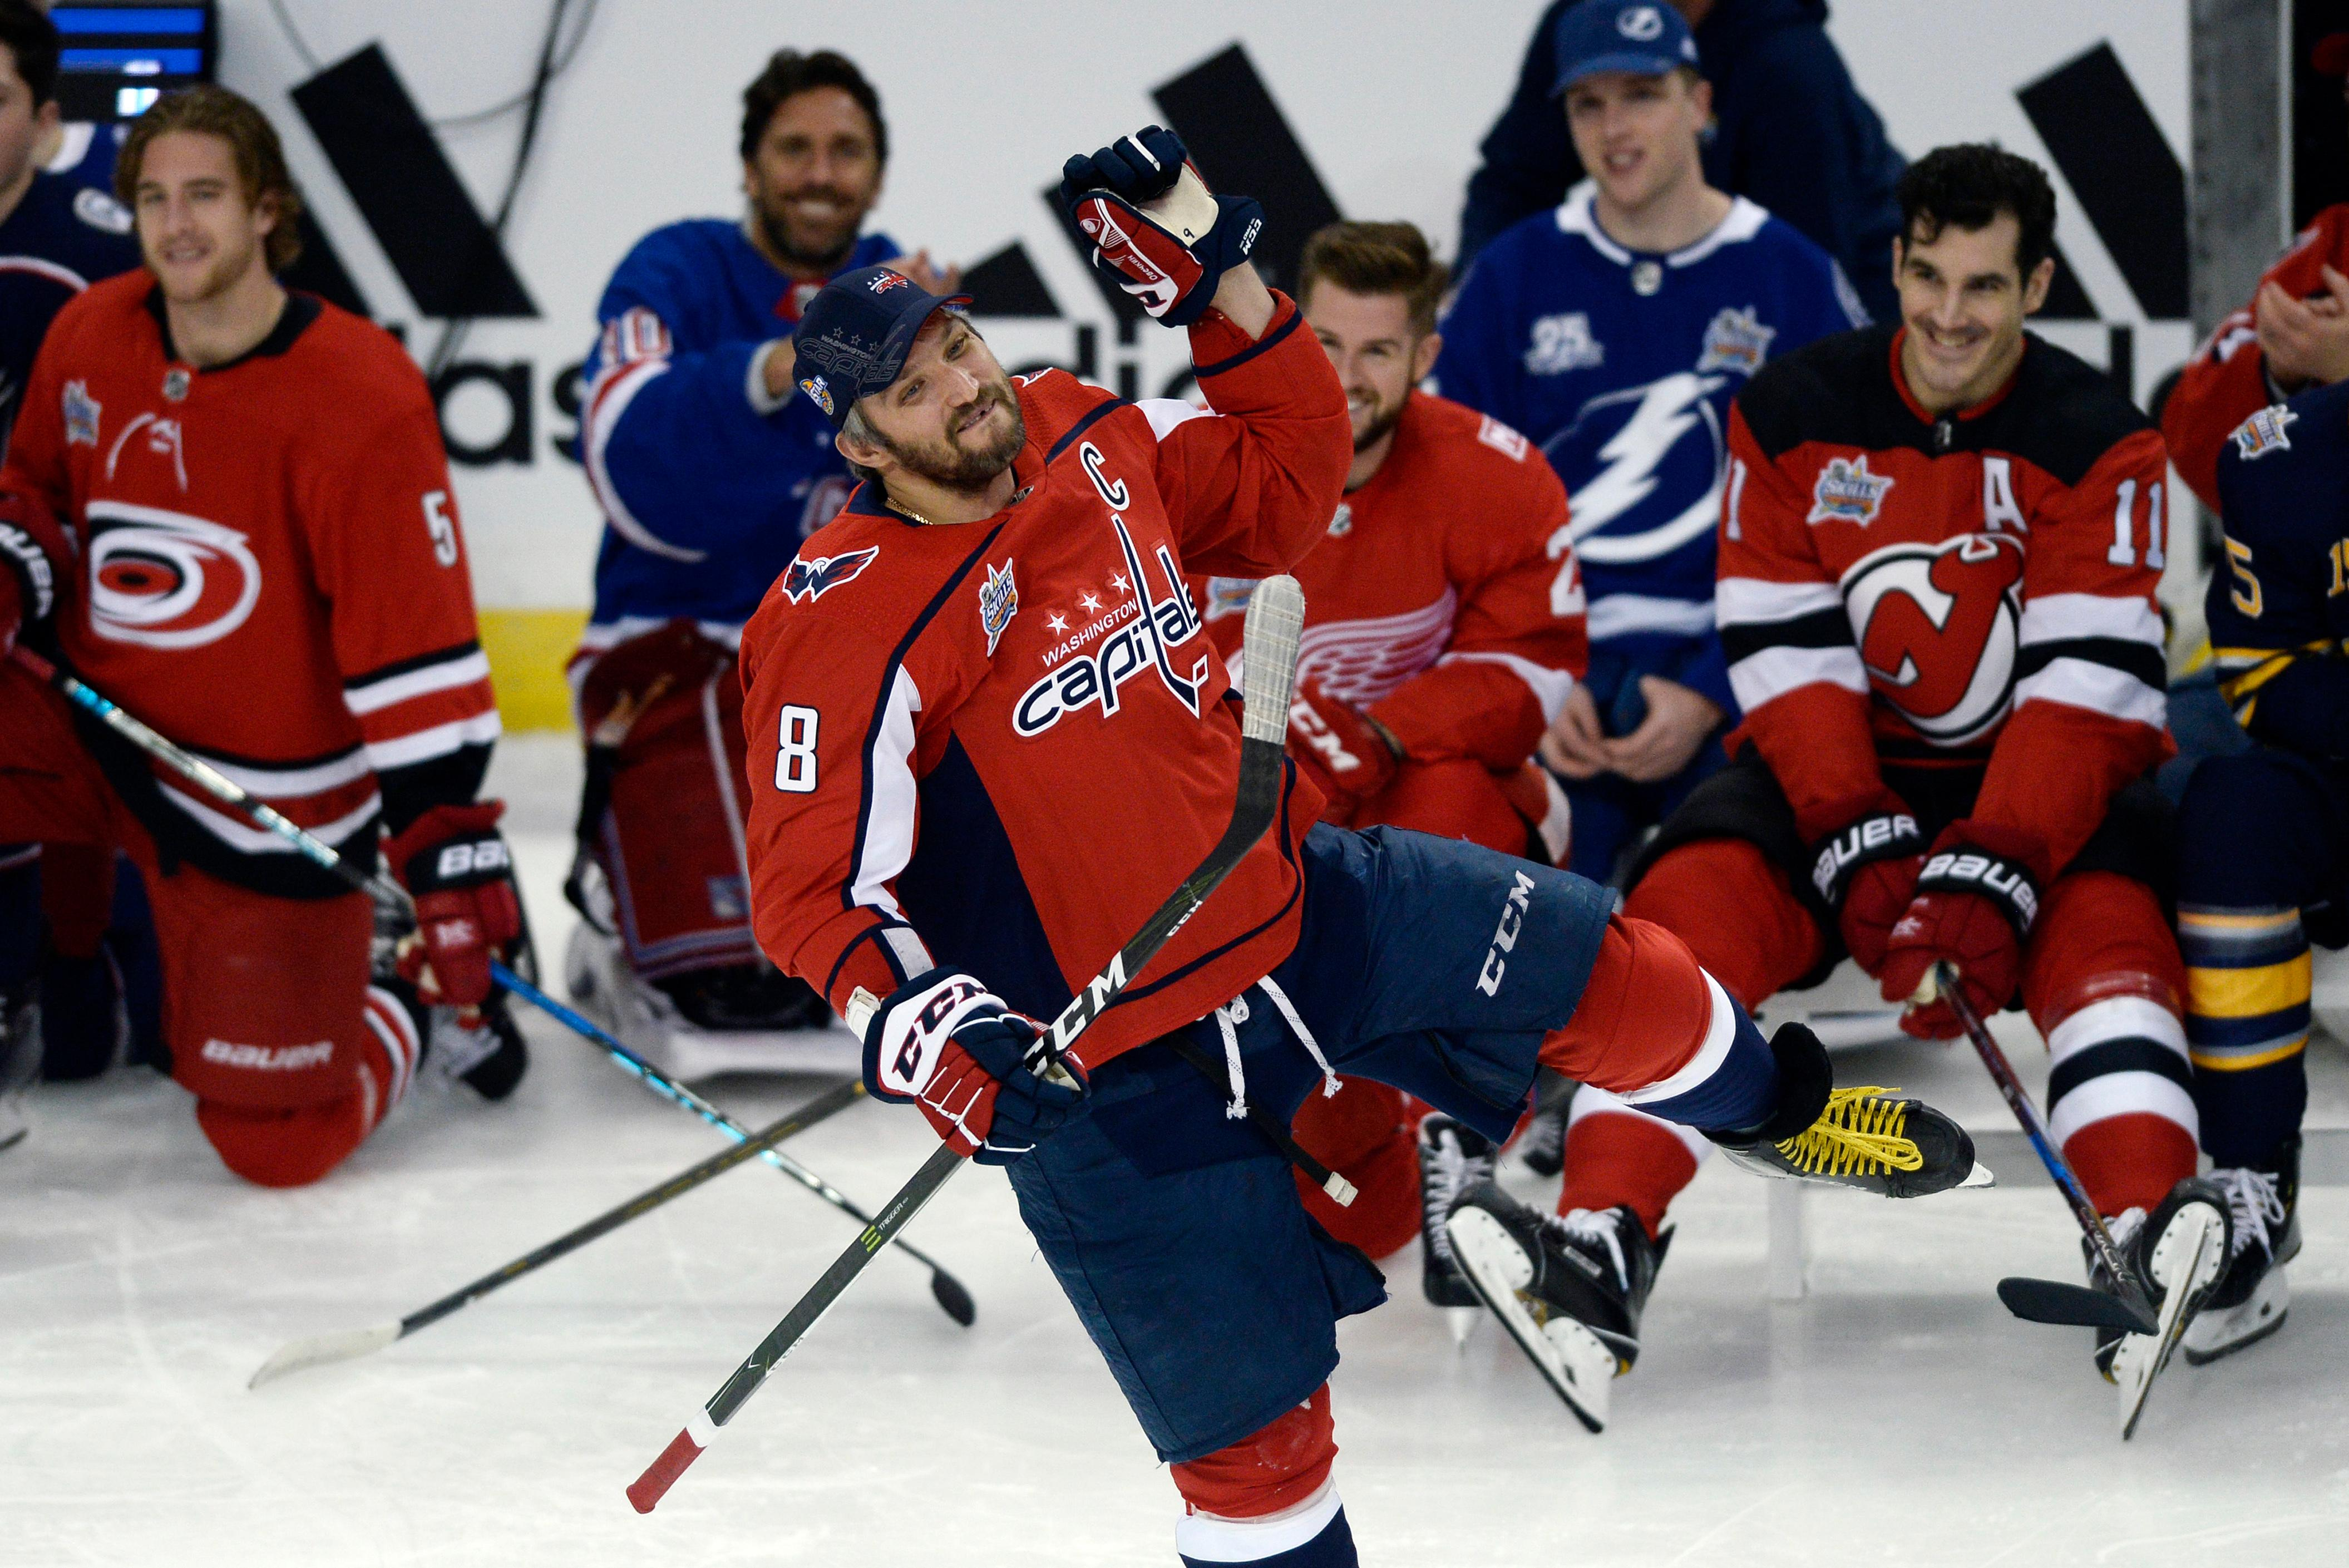 Washington Capitals forward Alexander Ovechkin reacts after winning the hardest shot during the Skills Competition, part of the NHL All-Star Game weekend, Saturday, Jan. 27, 2018, in Tampa, Fla. (AP Photo/Jason Behnken)